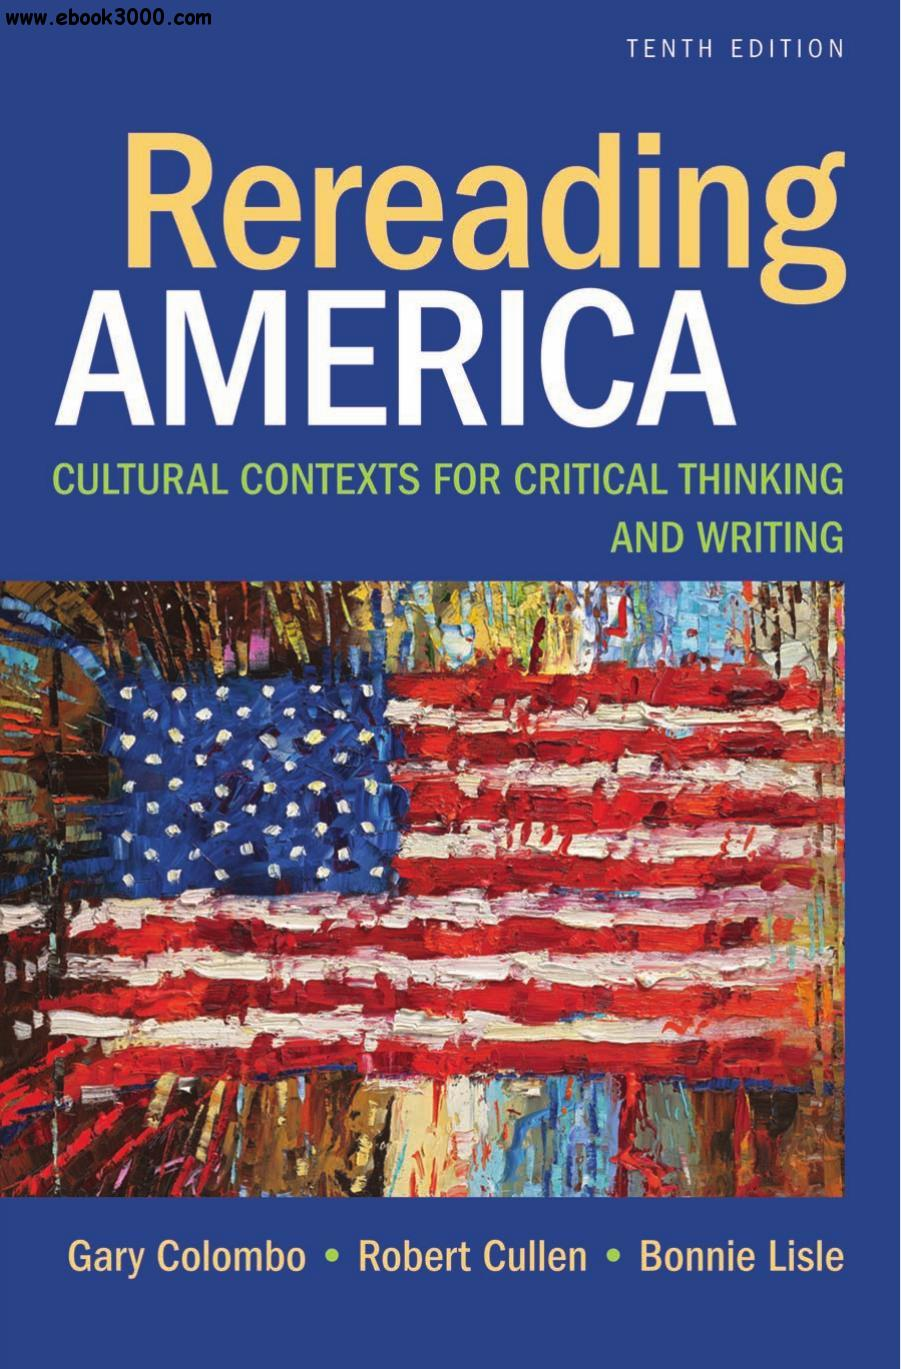 rereading america essays on american literature